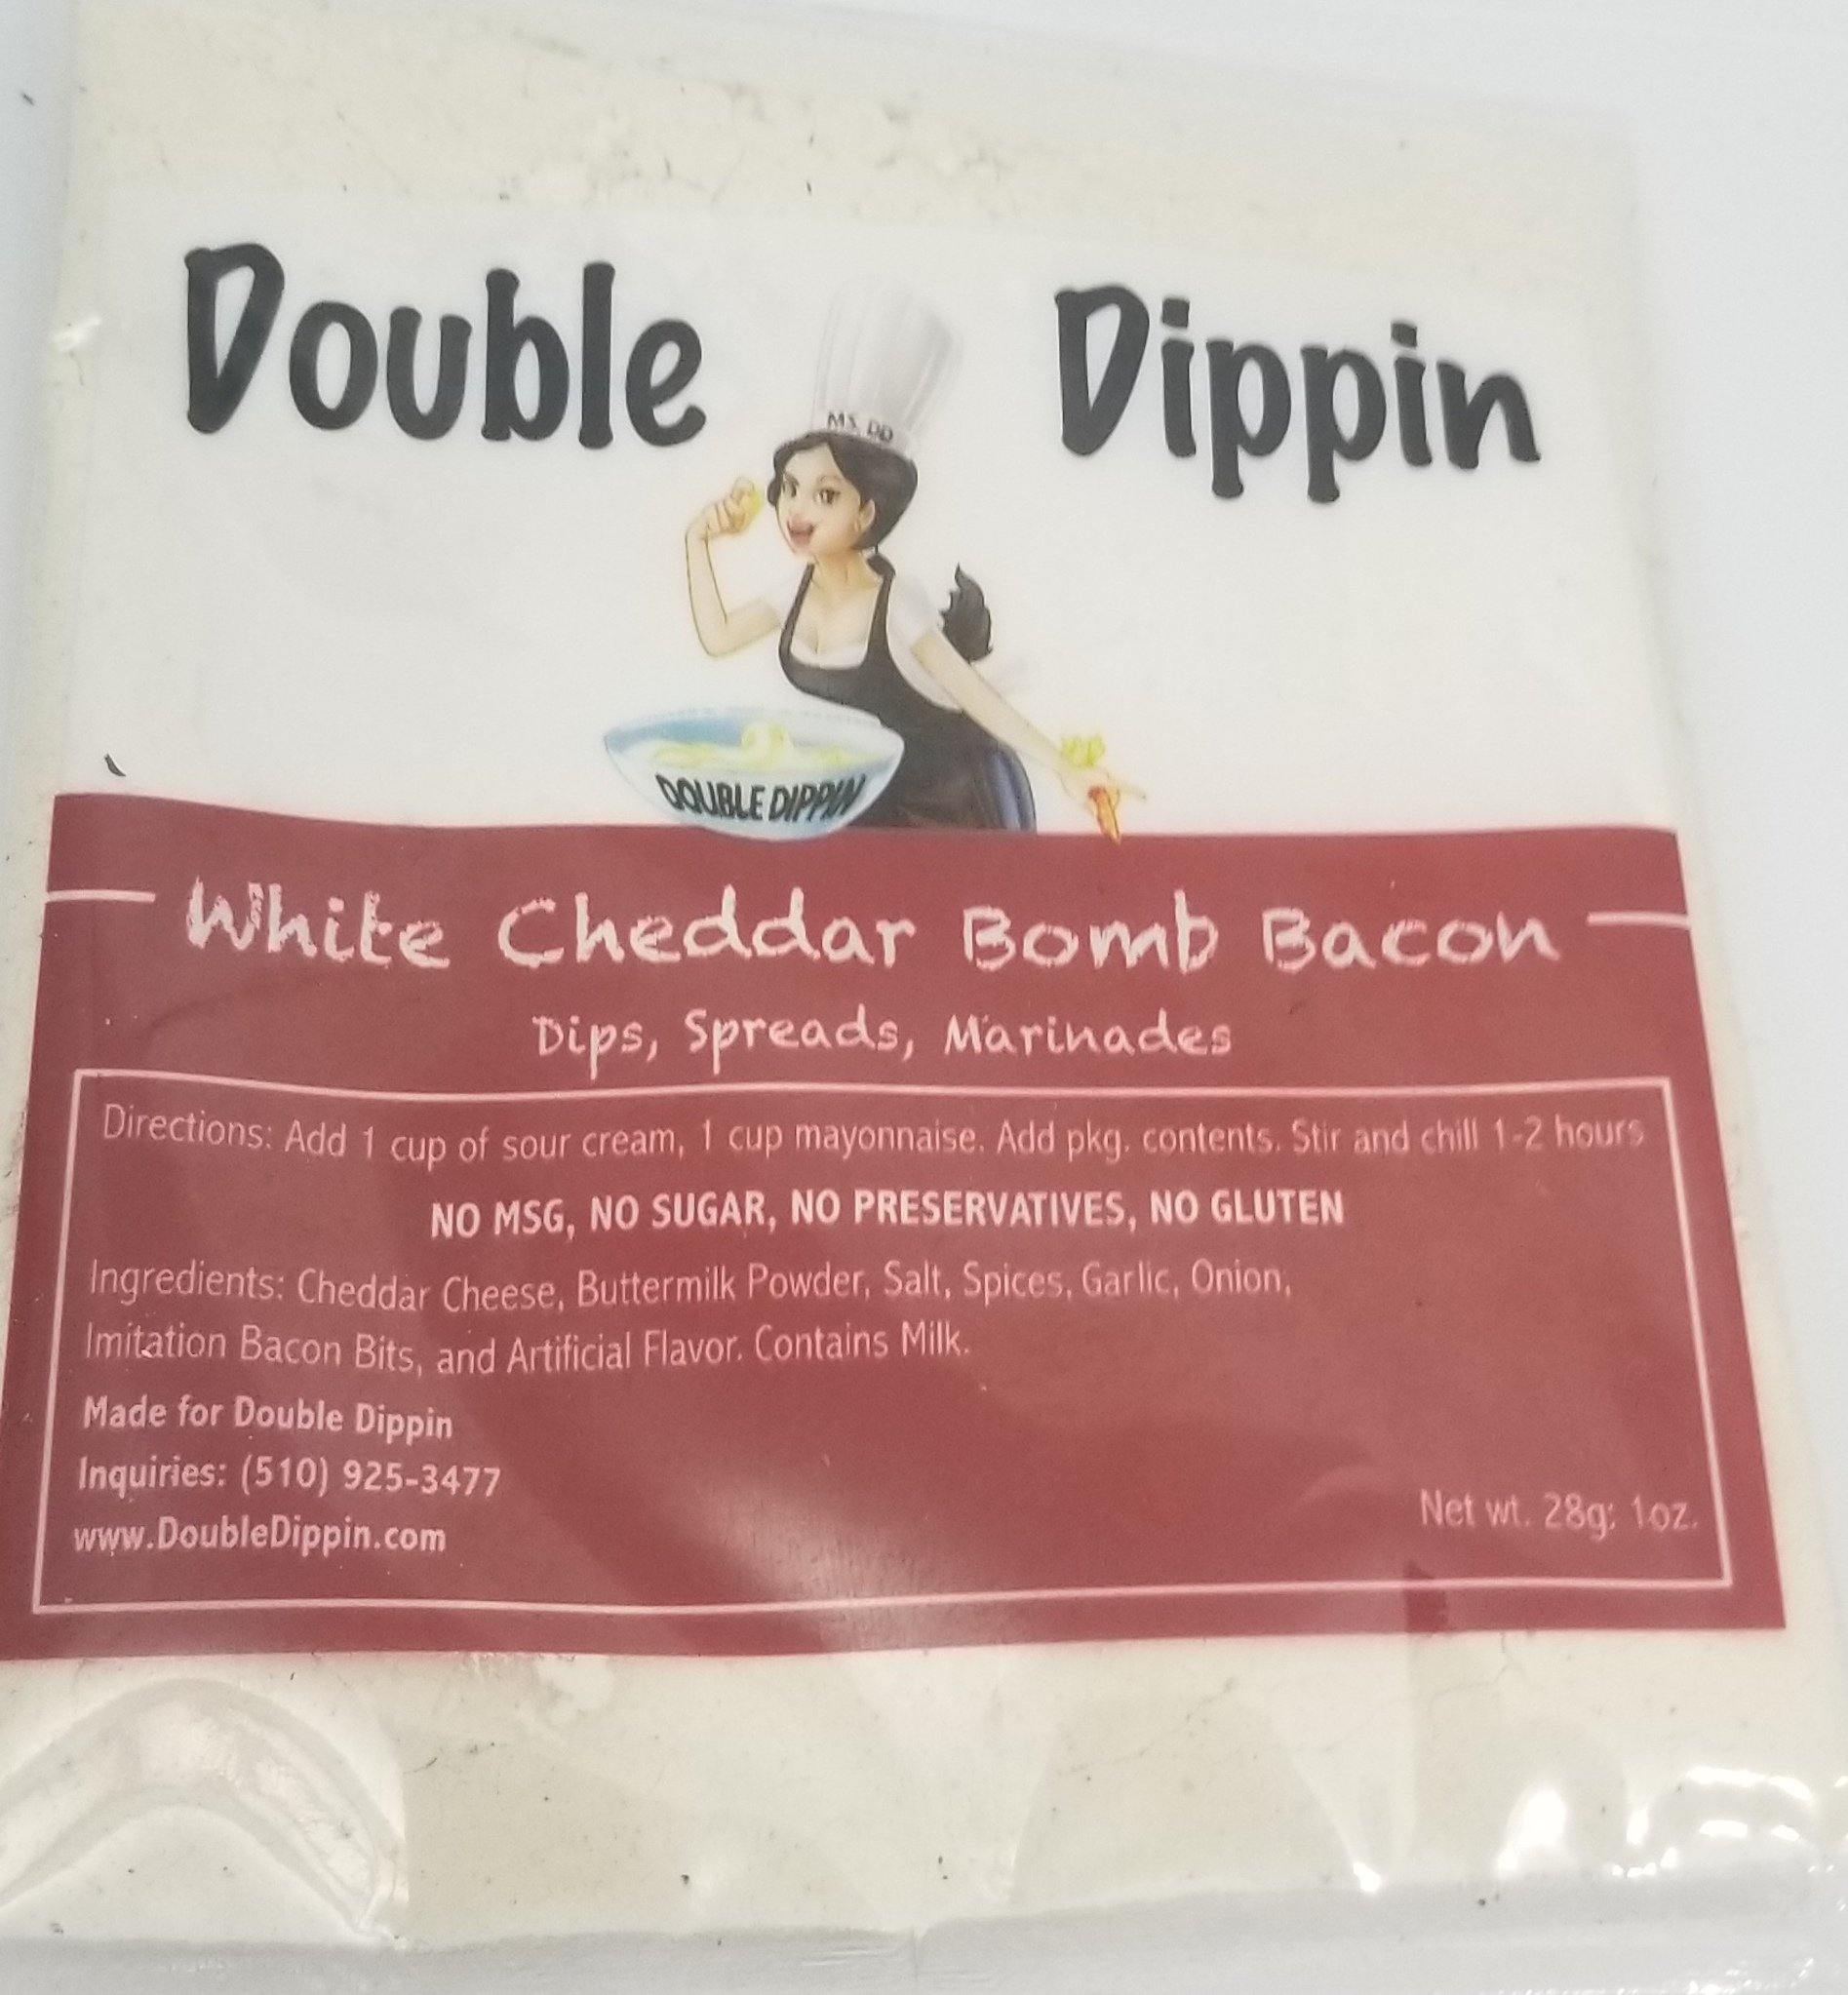 White Cheddar Bomb Bacon